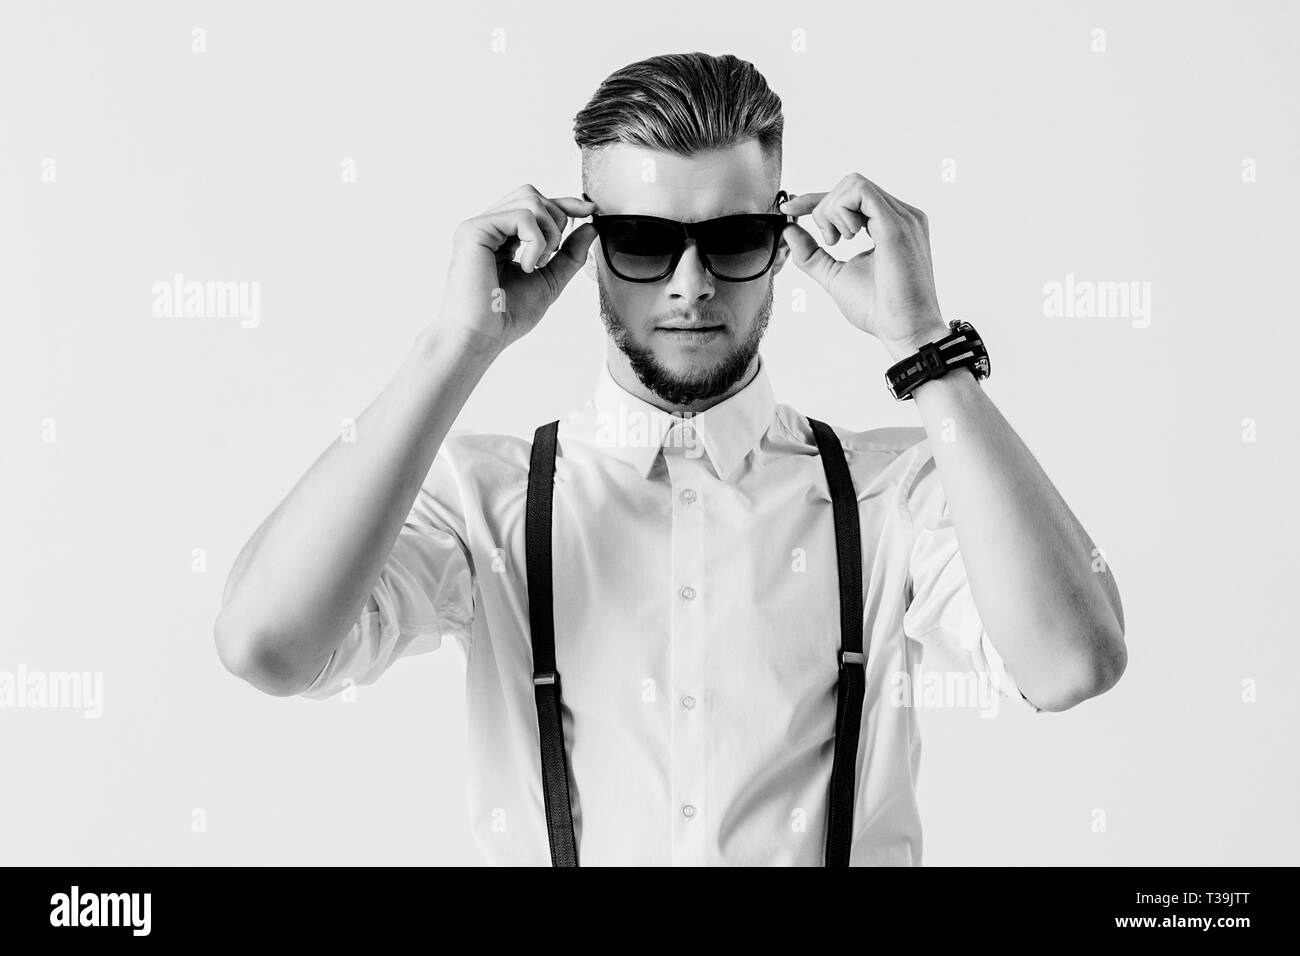 Black and white shot of stylish and elegant man in shirt with suspenders wearing sunglasses while standing against white background. Fashionable man i - Stock Image